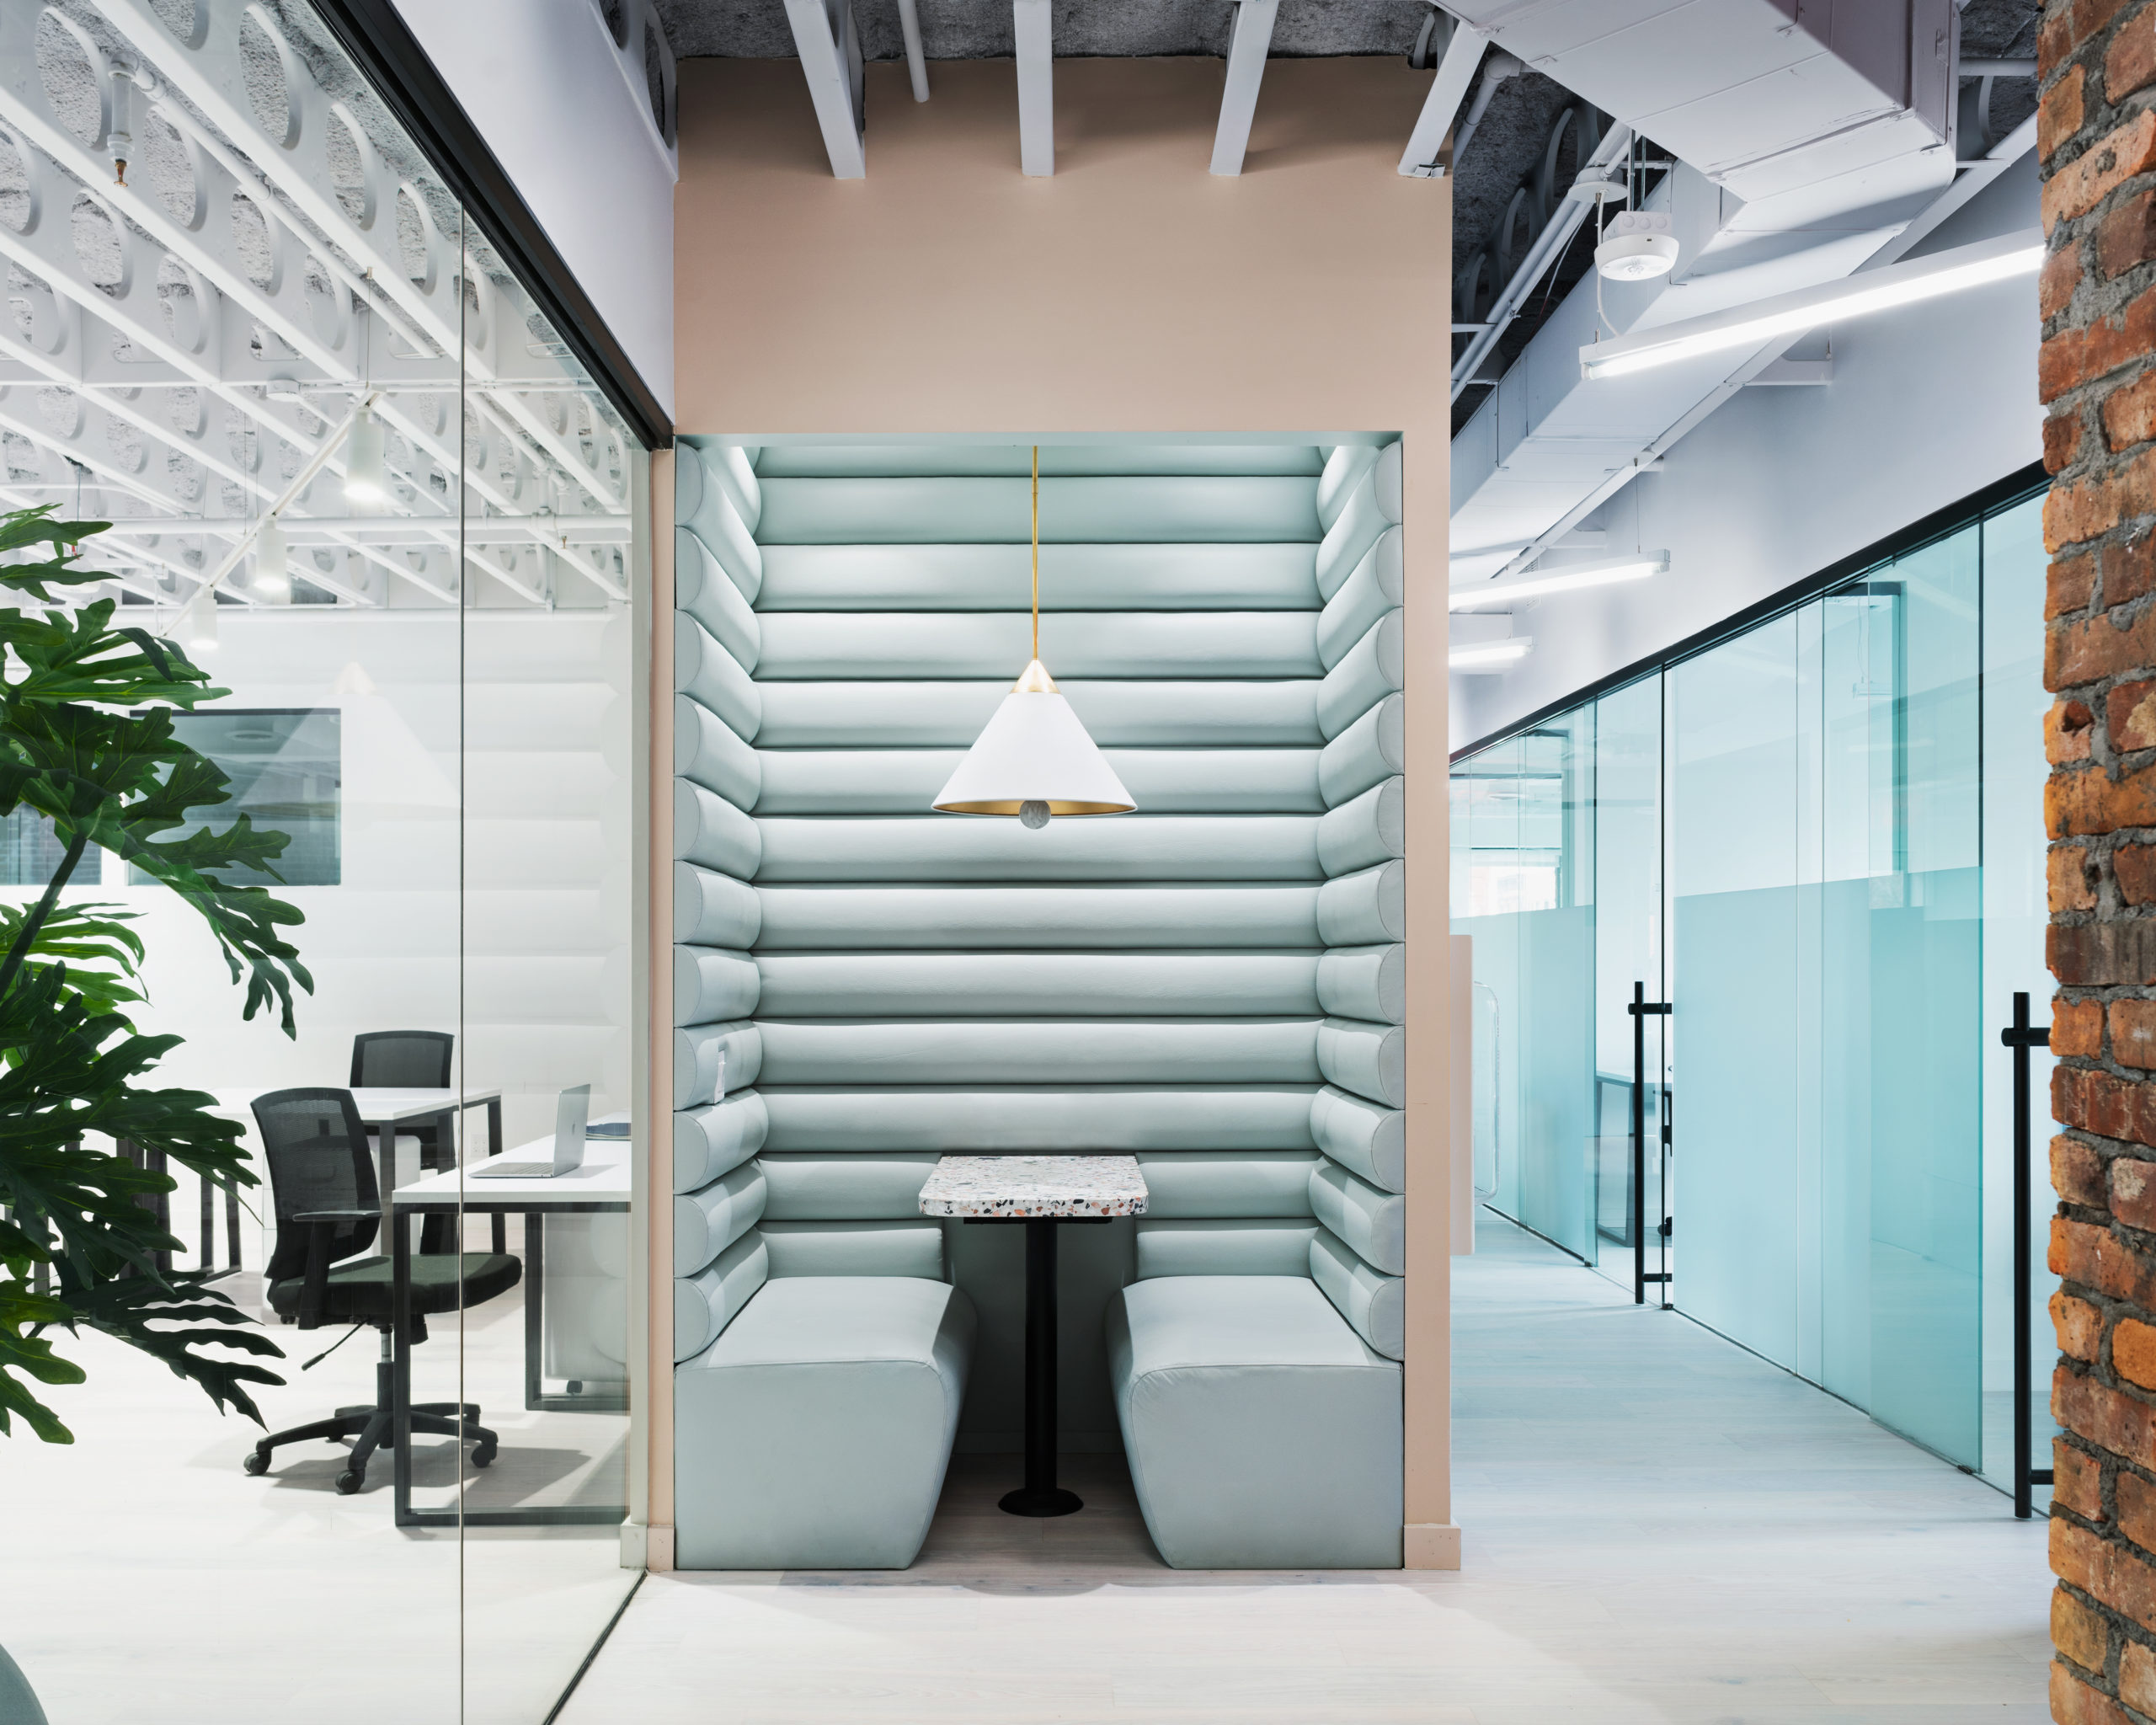 breathtaking workspaces Bond Collective Bushwick by Christian Lahoude Studio and Bond Collective, Brooklyn, Kings County, NY